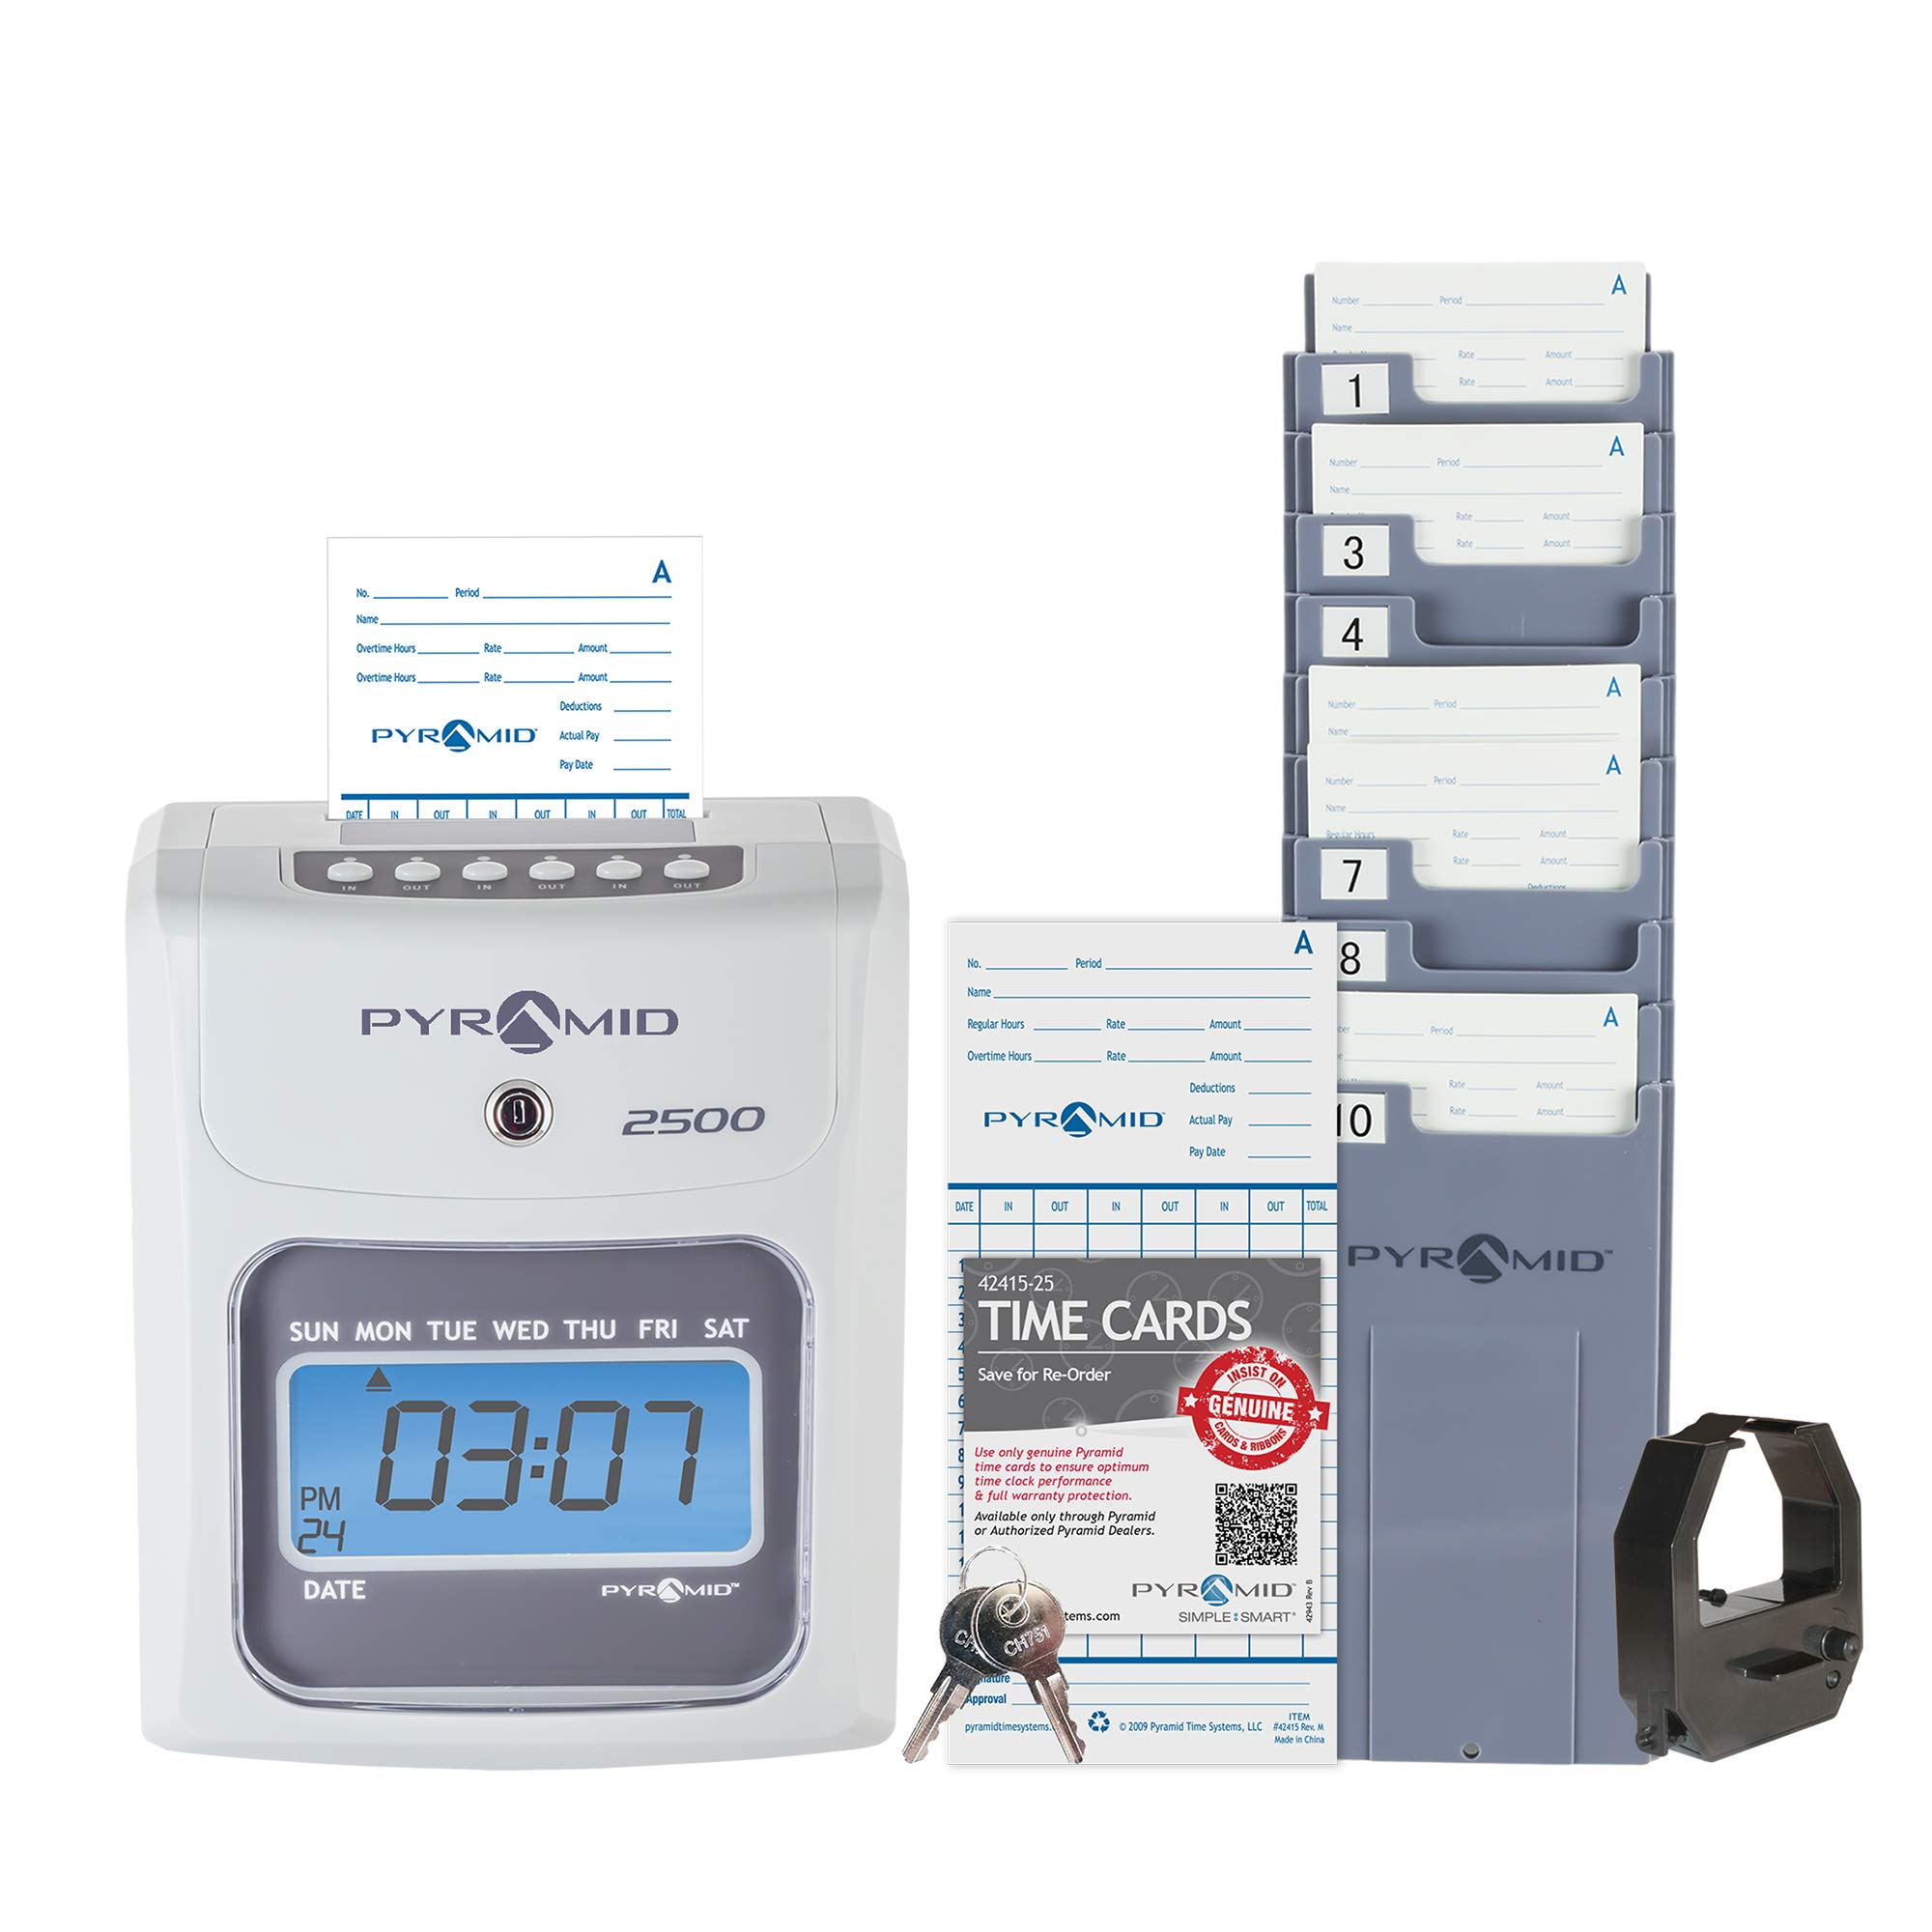 Pyramid 2500 Small Business Time Clock Bundle with 100 Time Cards, 1 Ribbon, 1 Time Card Rack, 2 Security Keys - No Employee Limit by Pyramid Time Systems